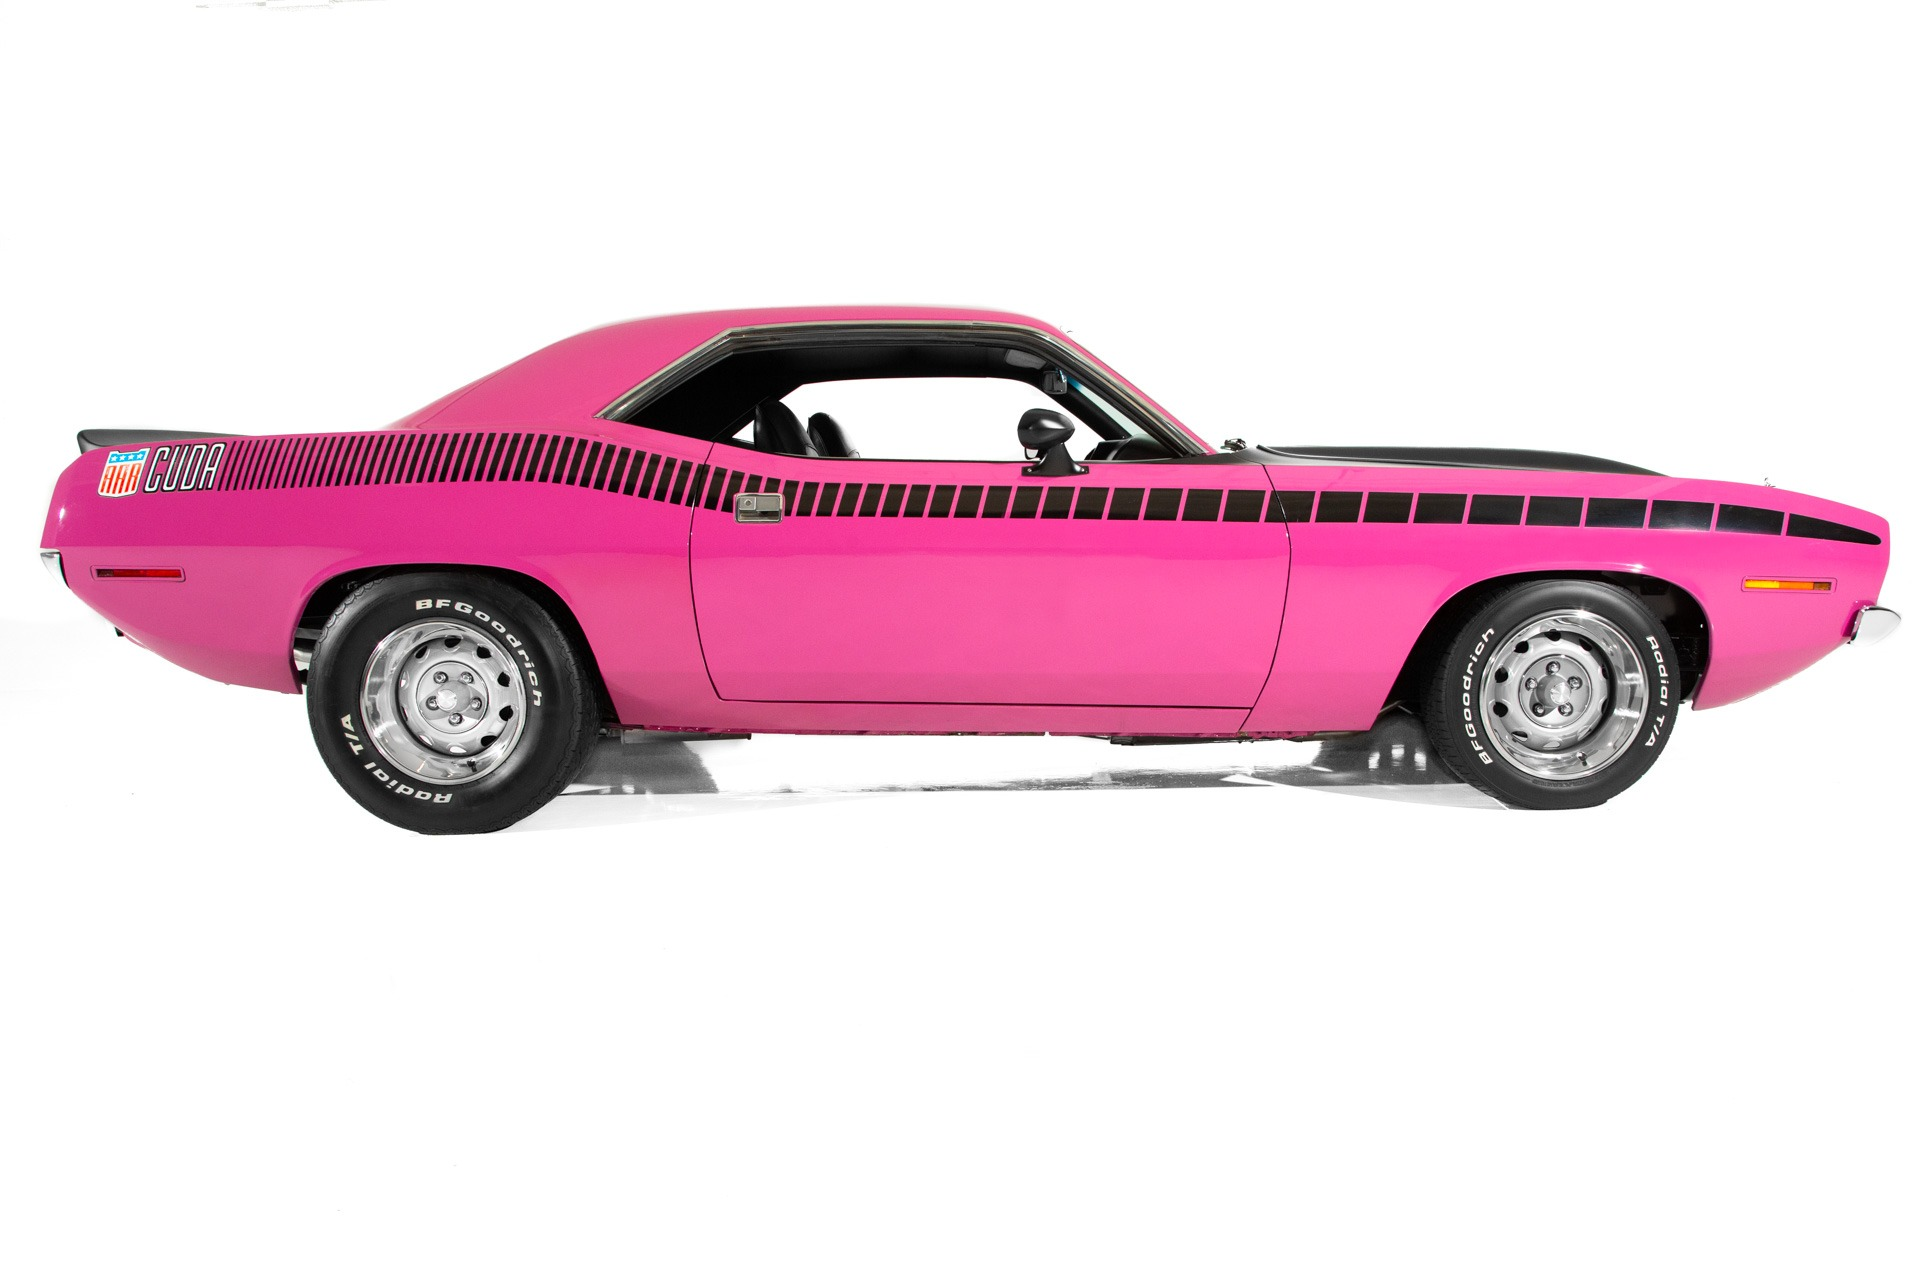 For Sale Used 1970 Plymouth Cuda Panther Pink 440 4-Speed | American Dream Machines Des Moines IA 50309